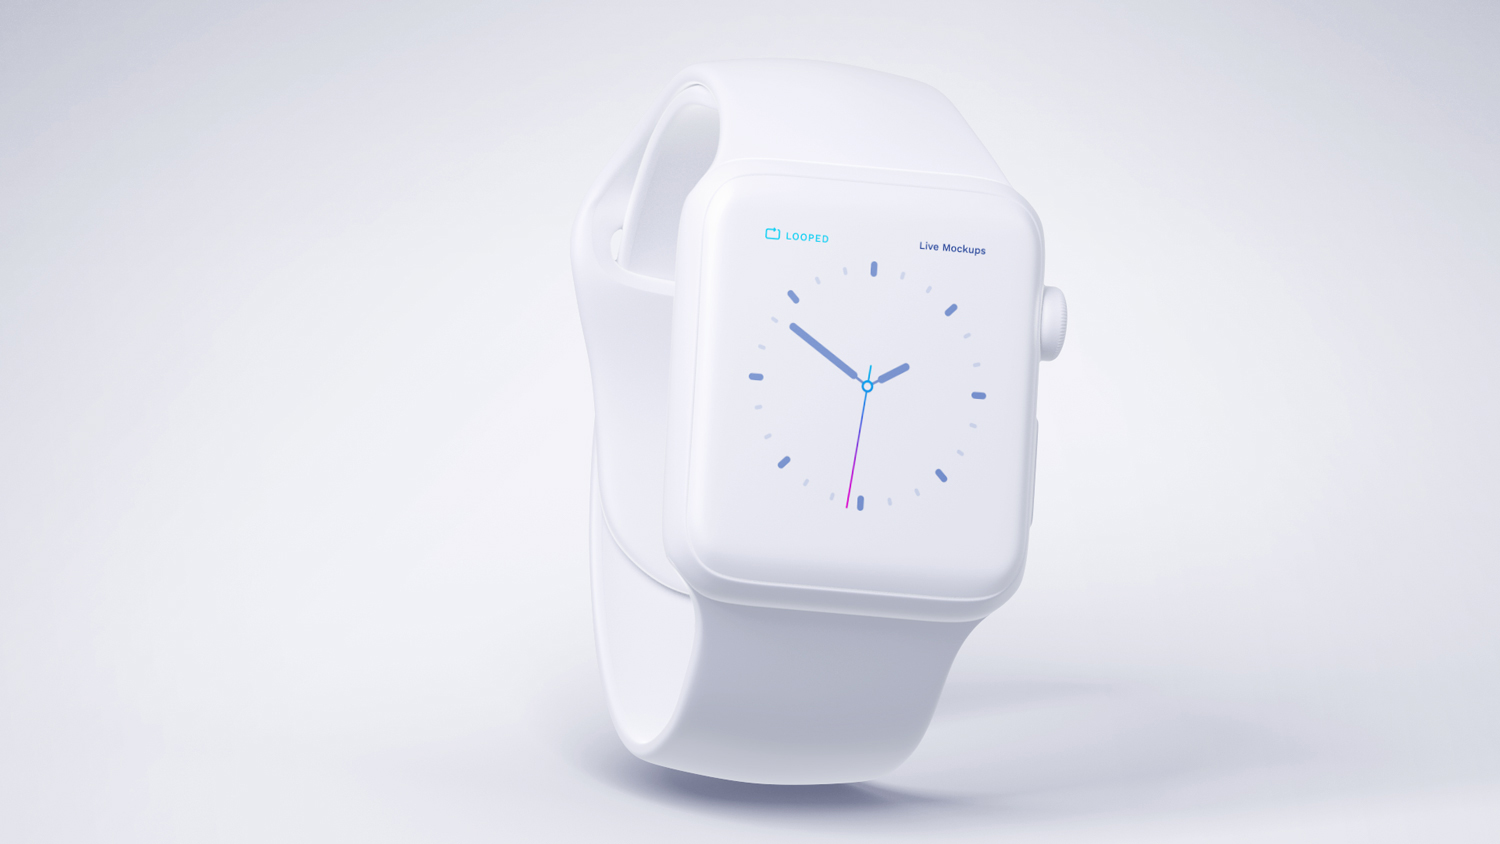 Watch-White-Matte-Apple-Devices-Mockup